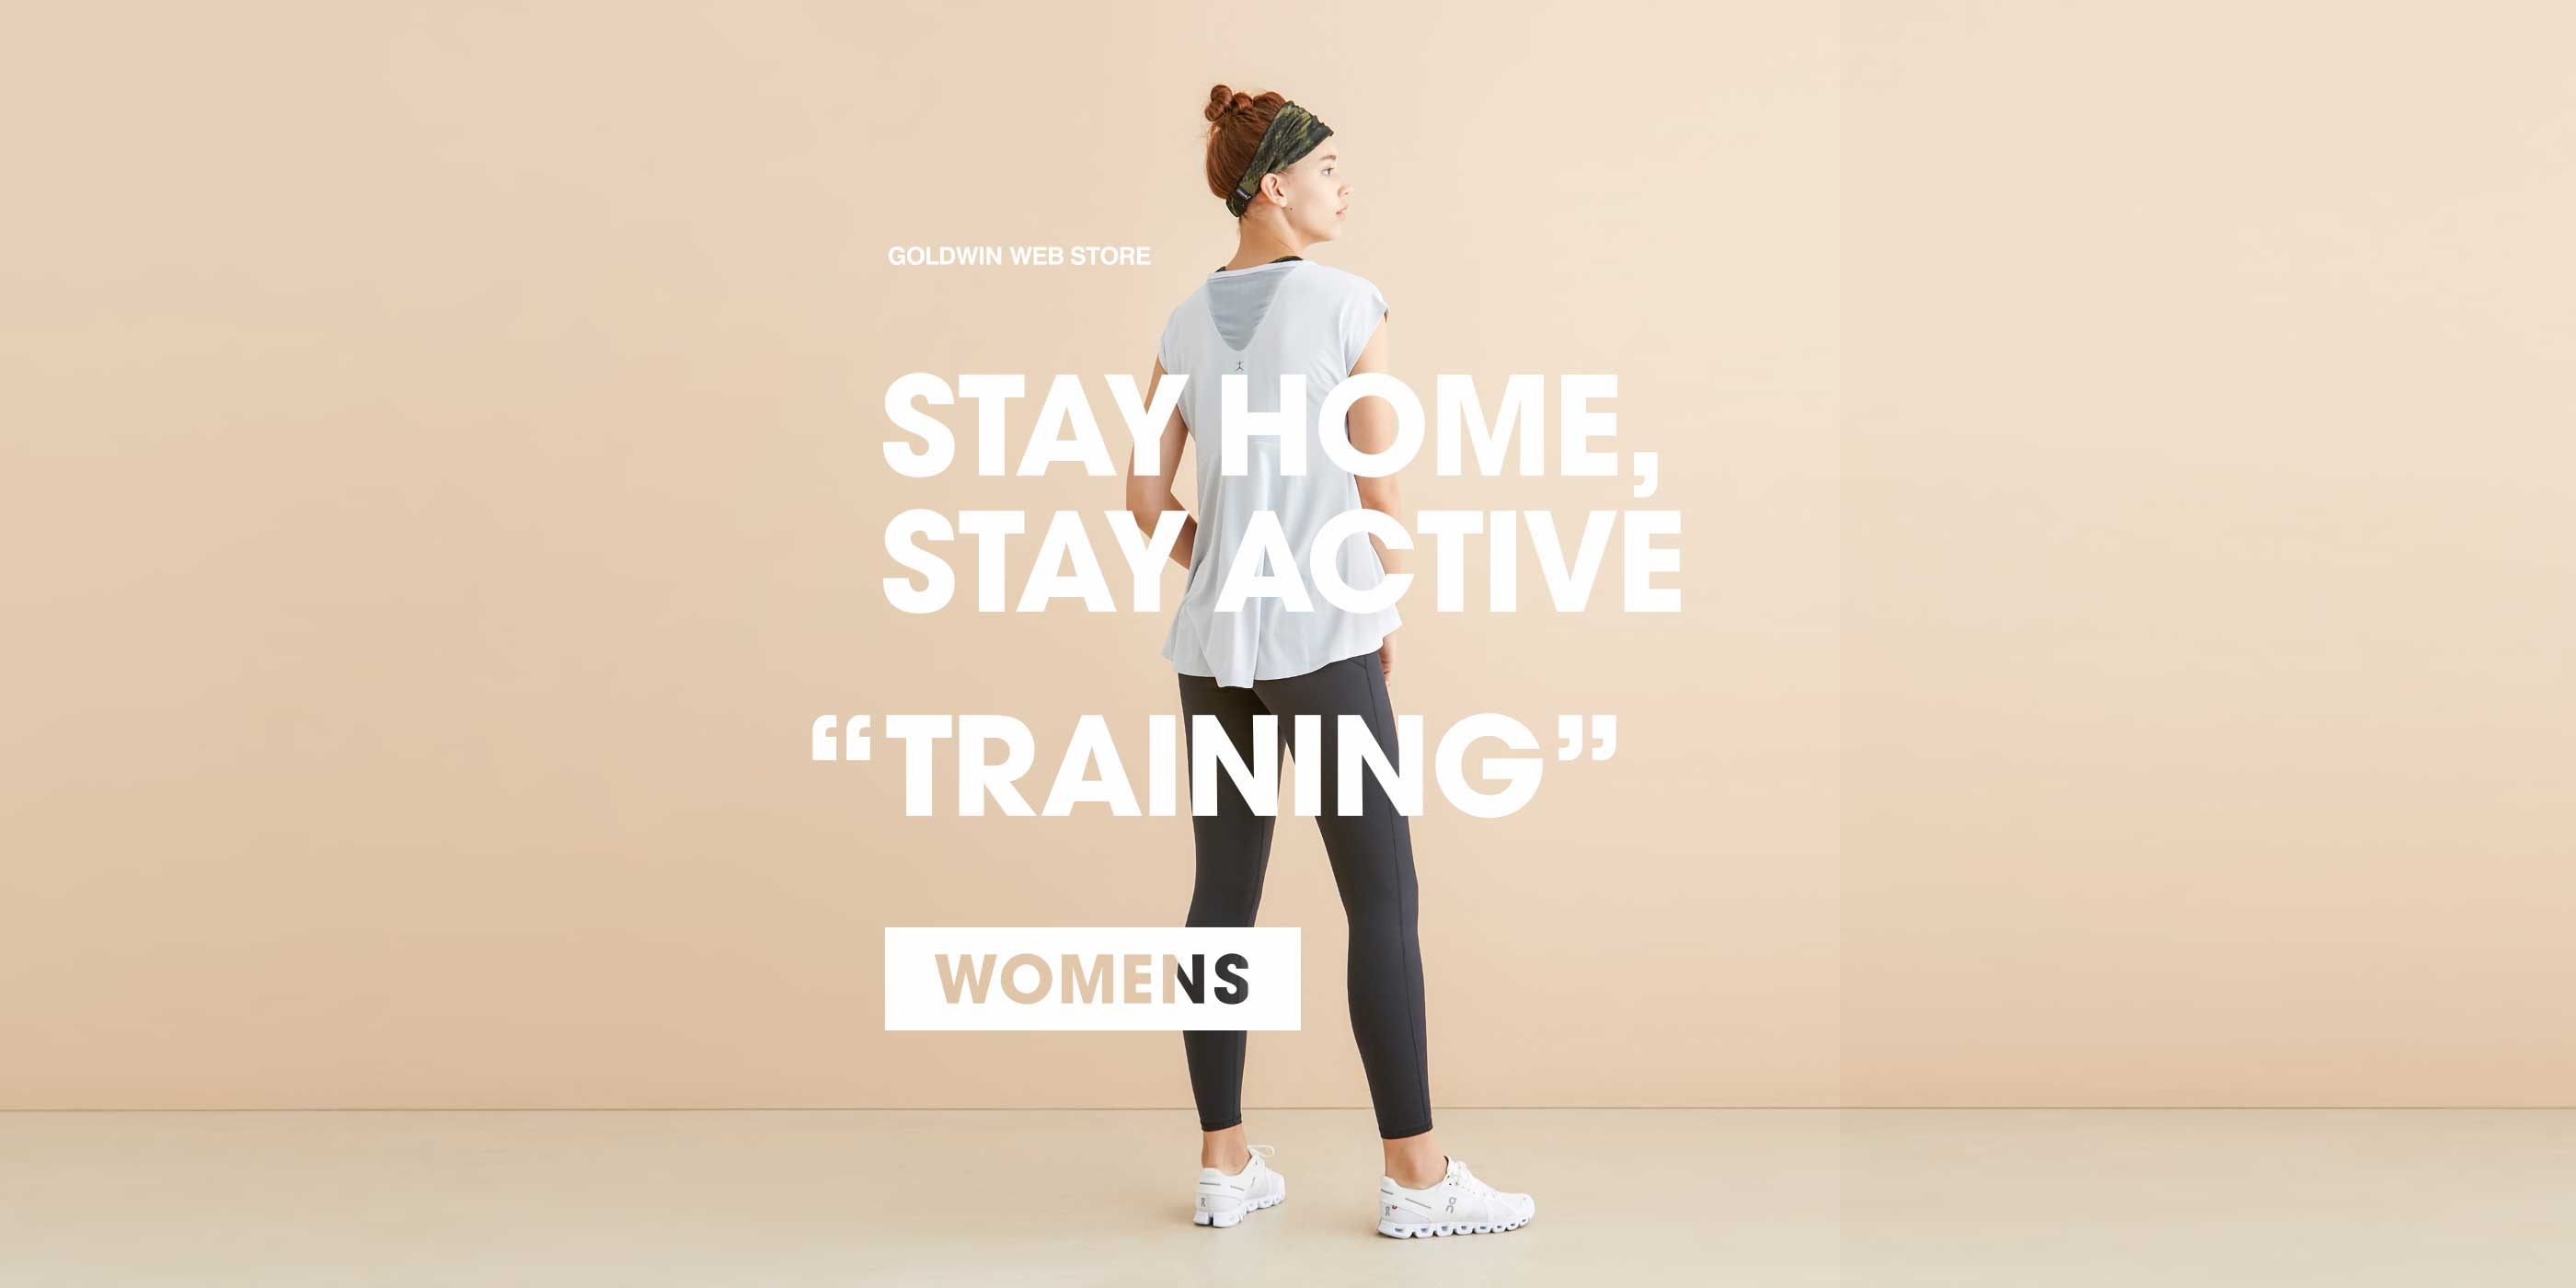 "STAY HOME, STAY ACTIVE ""TRAINING"" WOMENS"